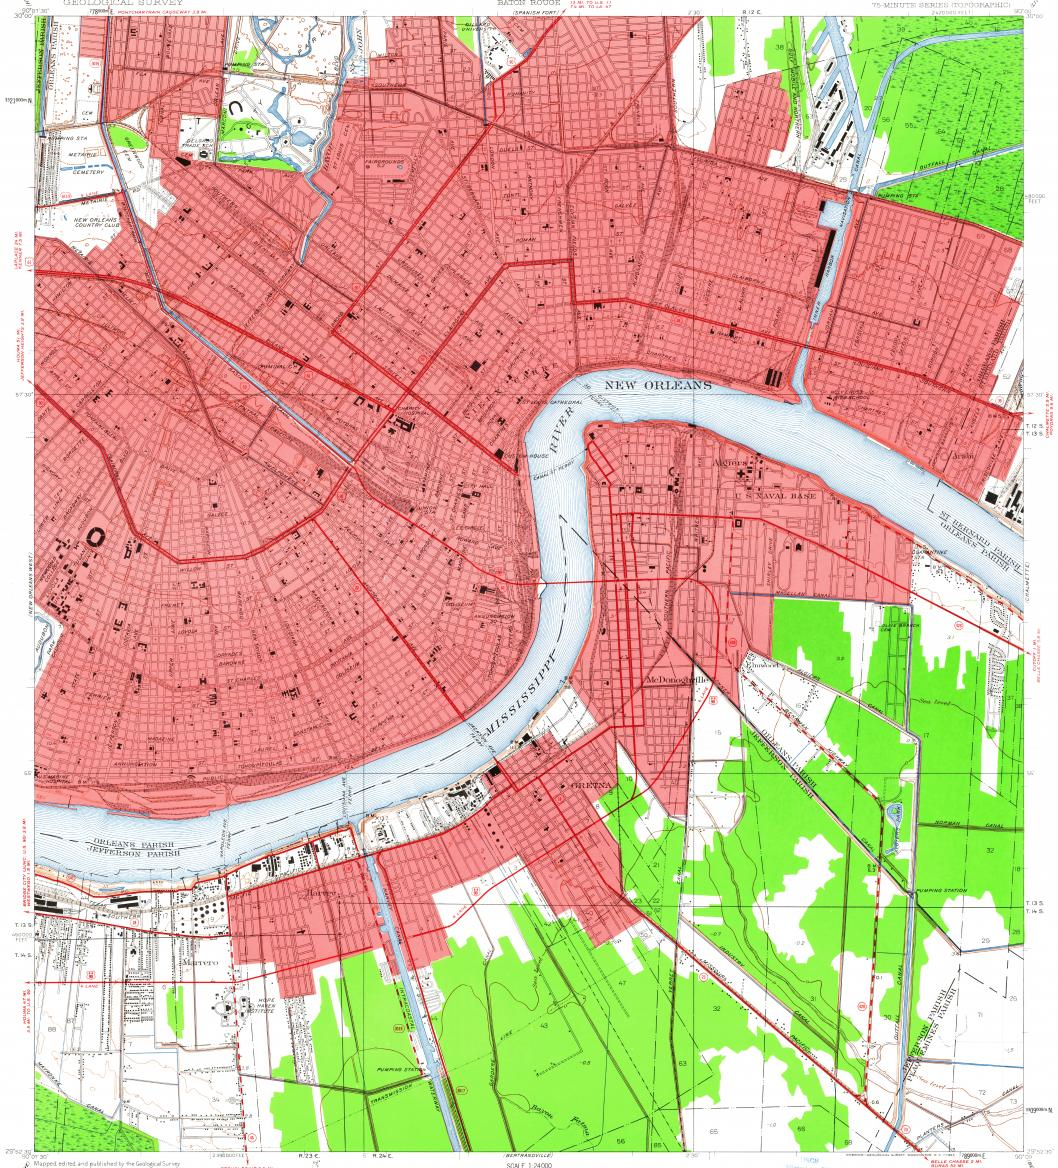 Download Topographic Map In Area Of New Orleans Marrero - Map of new orleans area